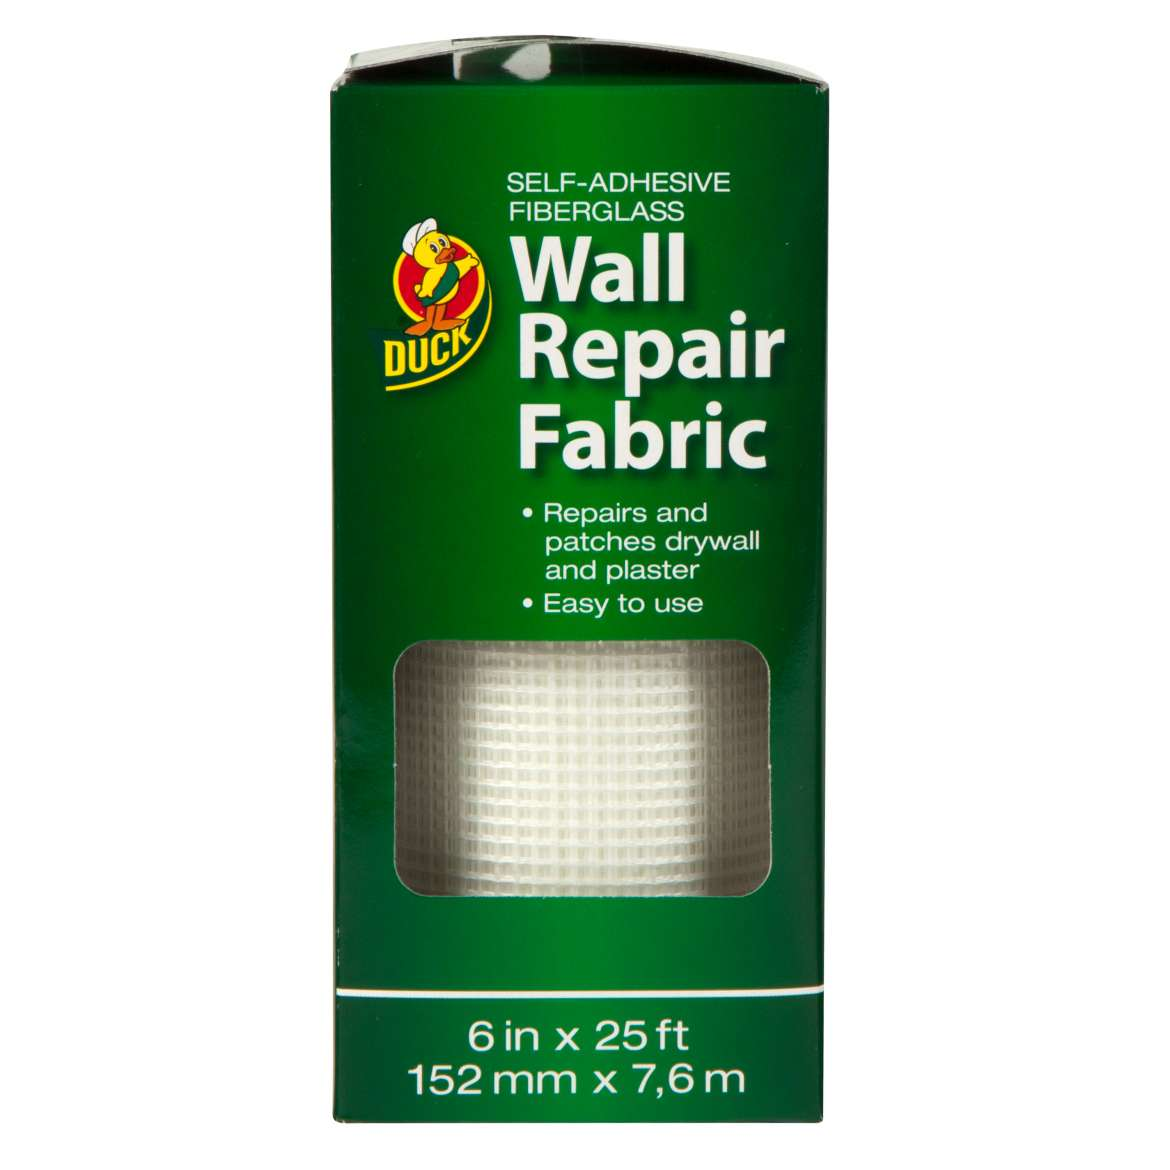 Wall Repair Fabric